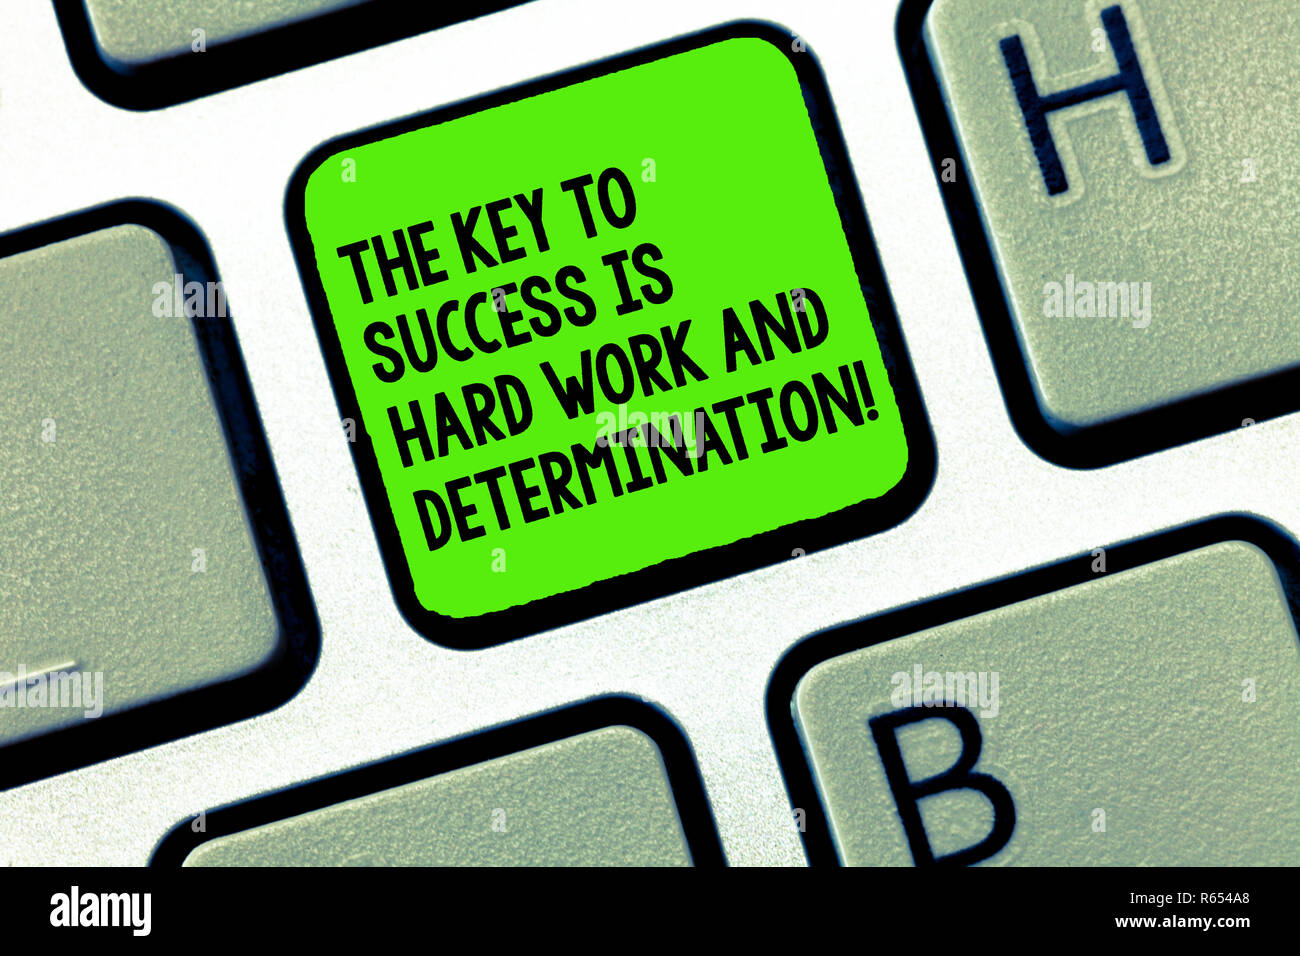 hardwork and determination are the key to success